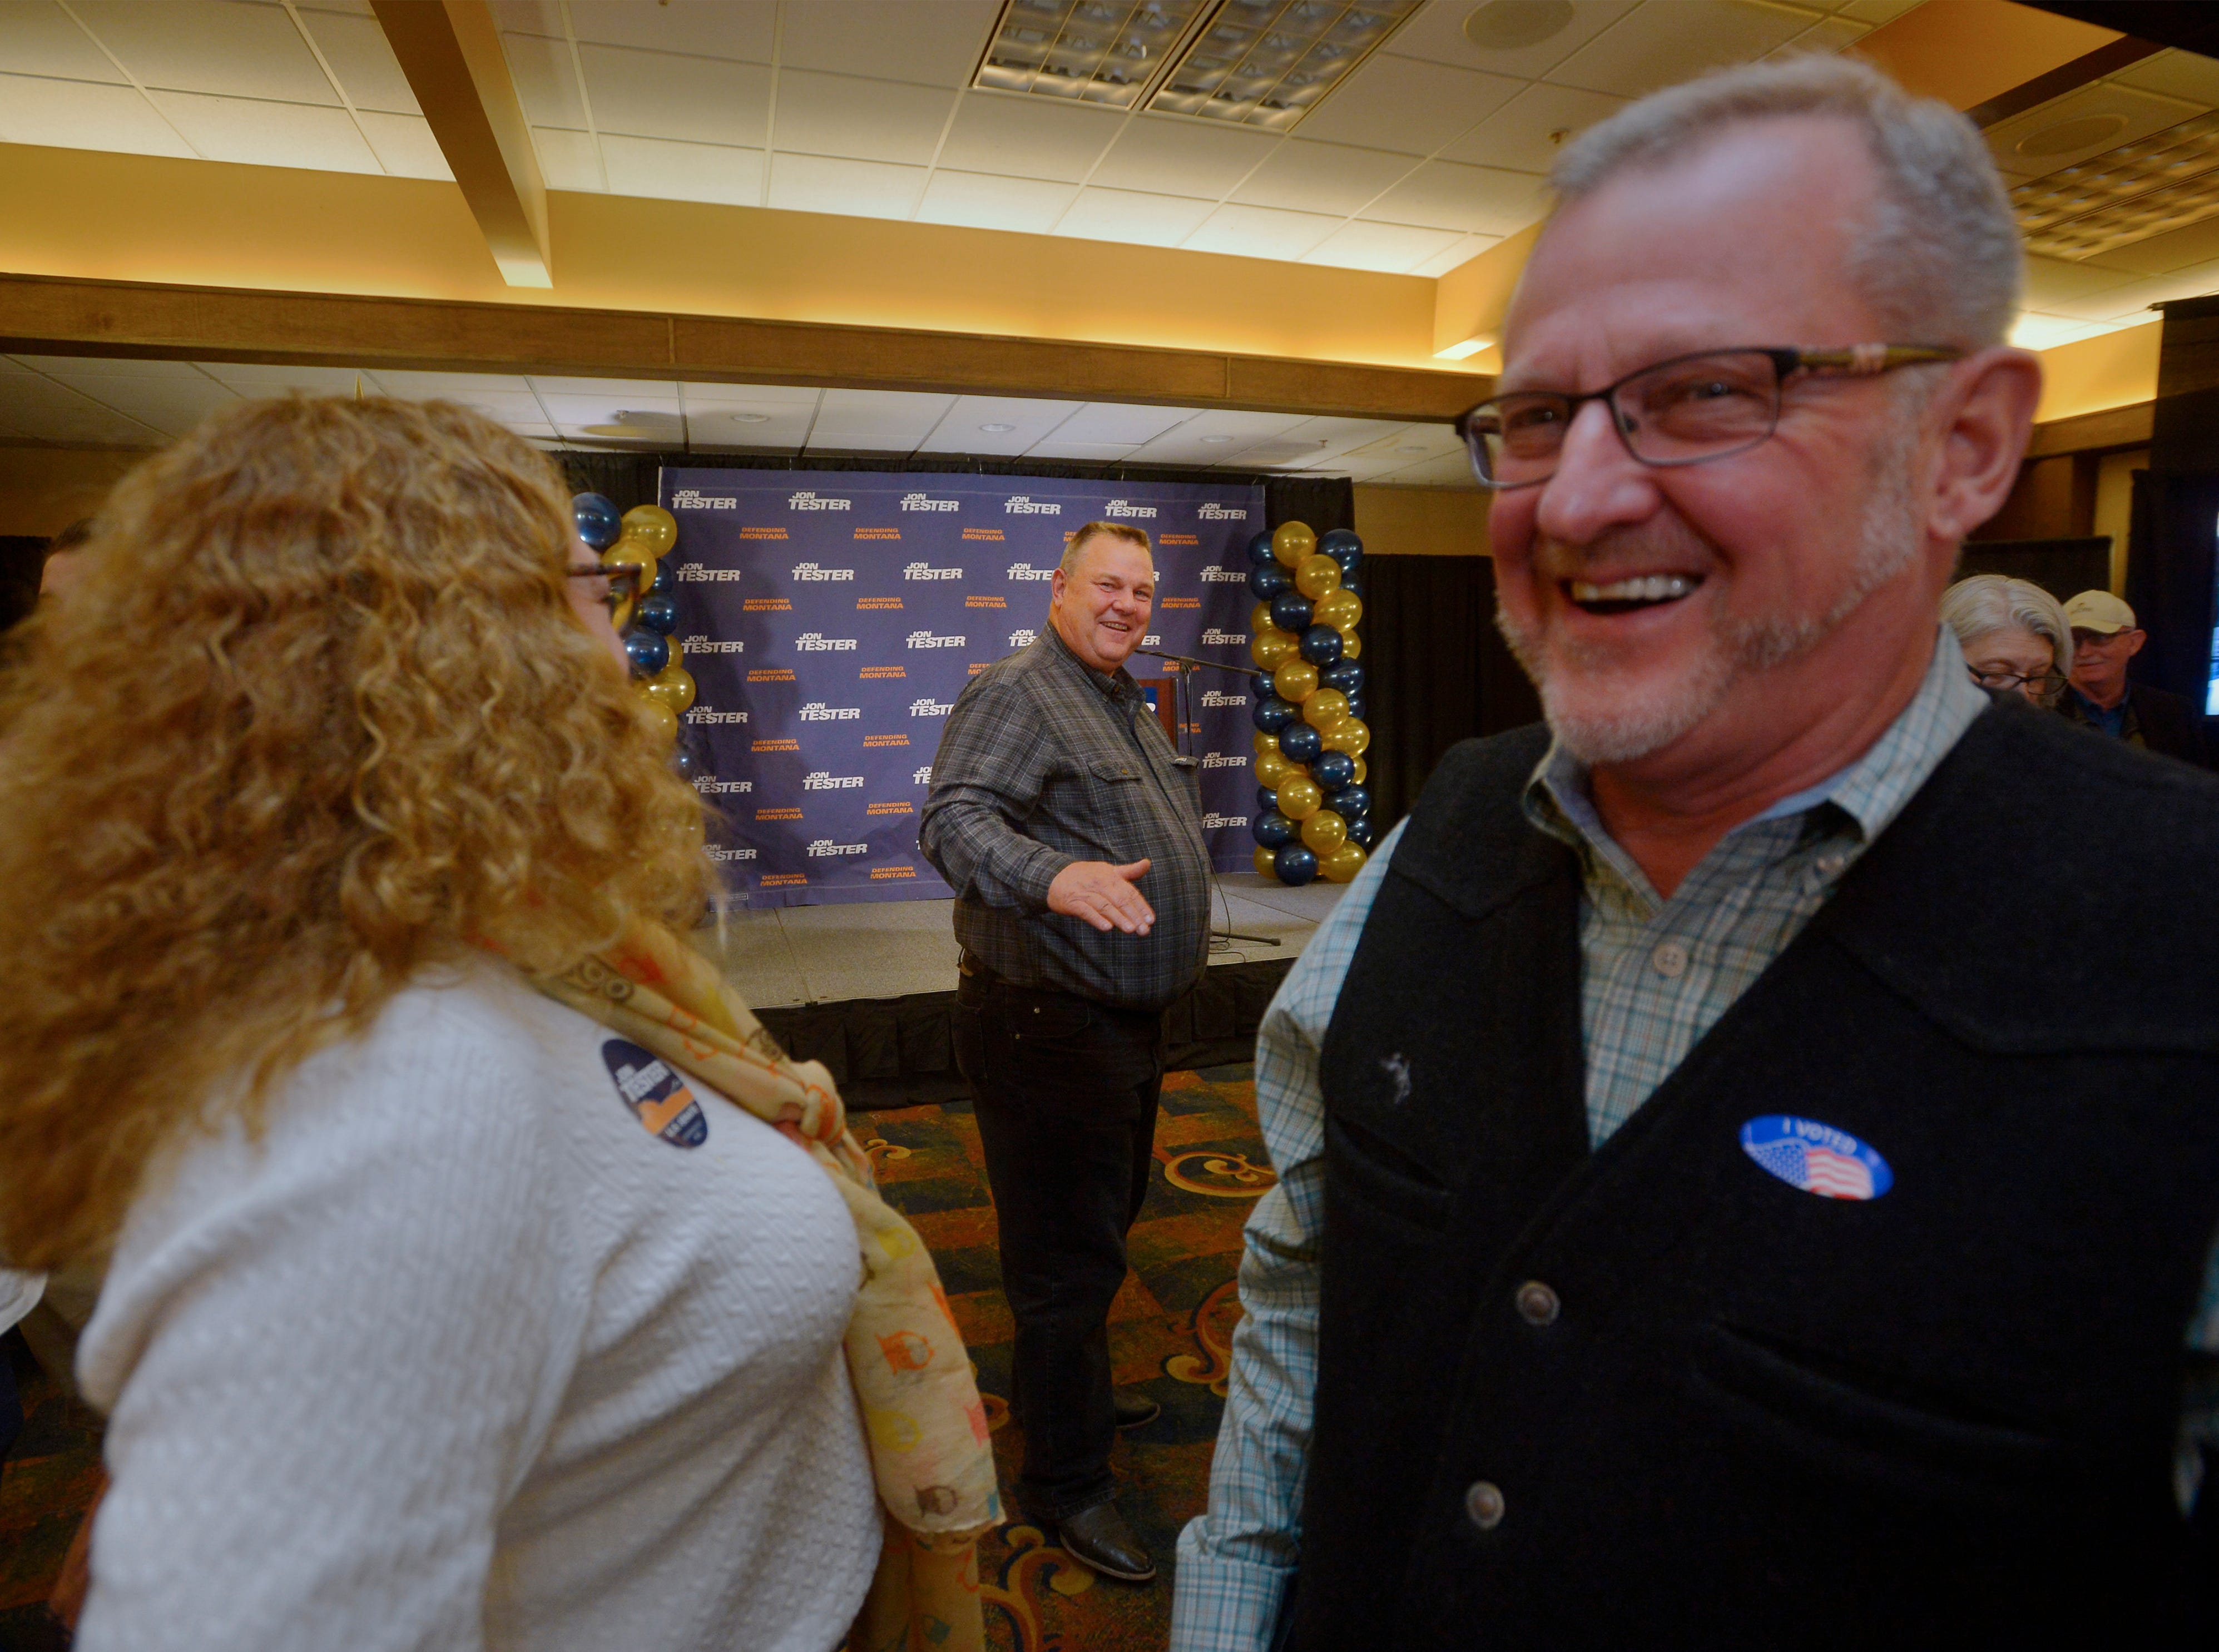 Senator Jon Tester mingles with supporters early in the evening, Tuesday night, during his election night party at the Holiday Inn in Great Falls.